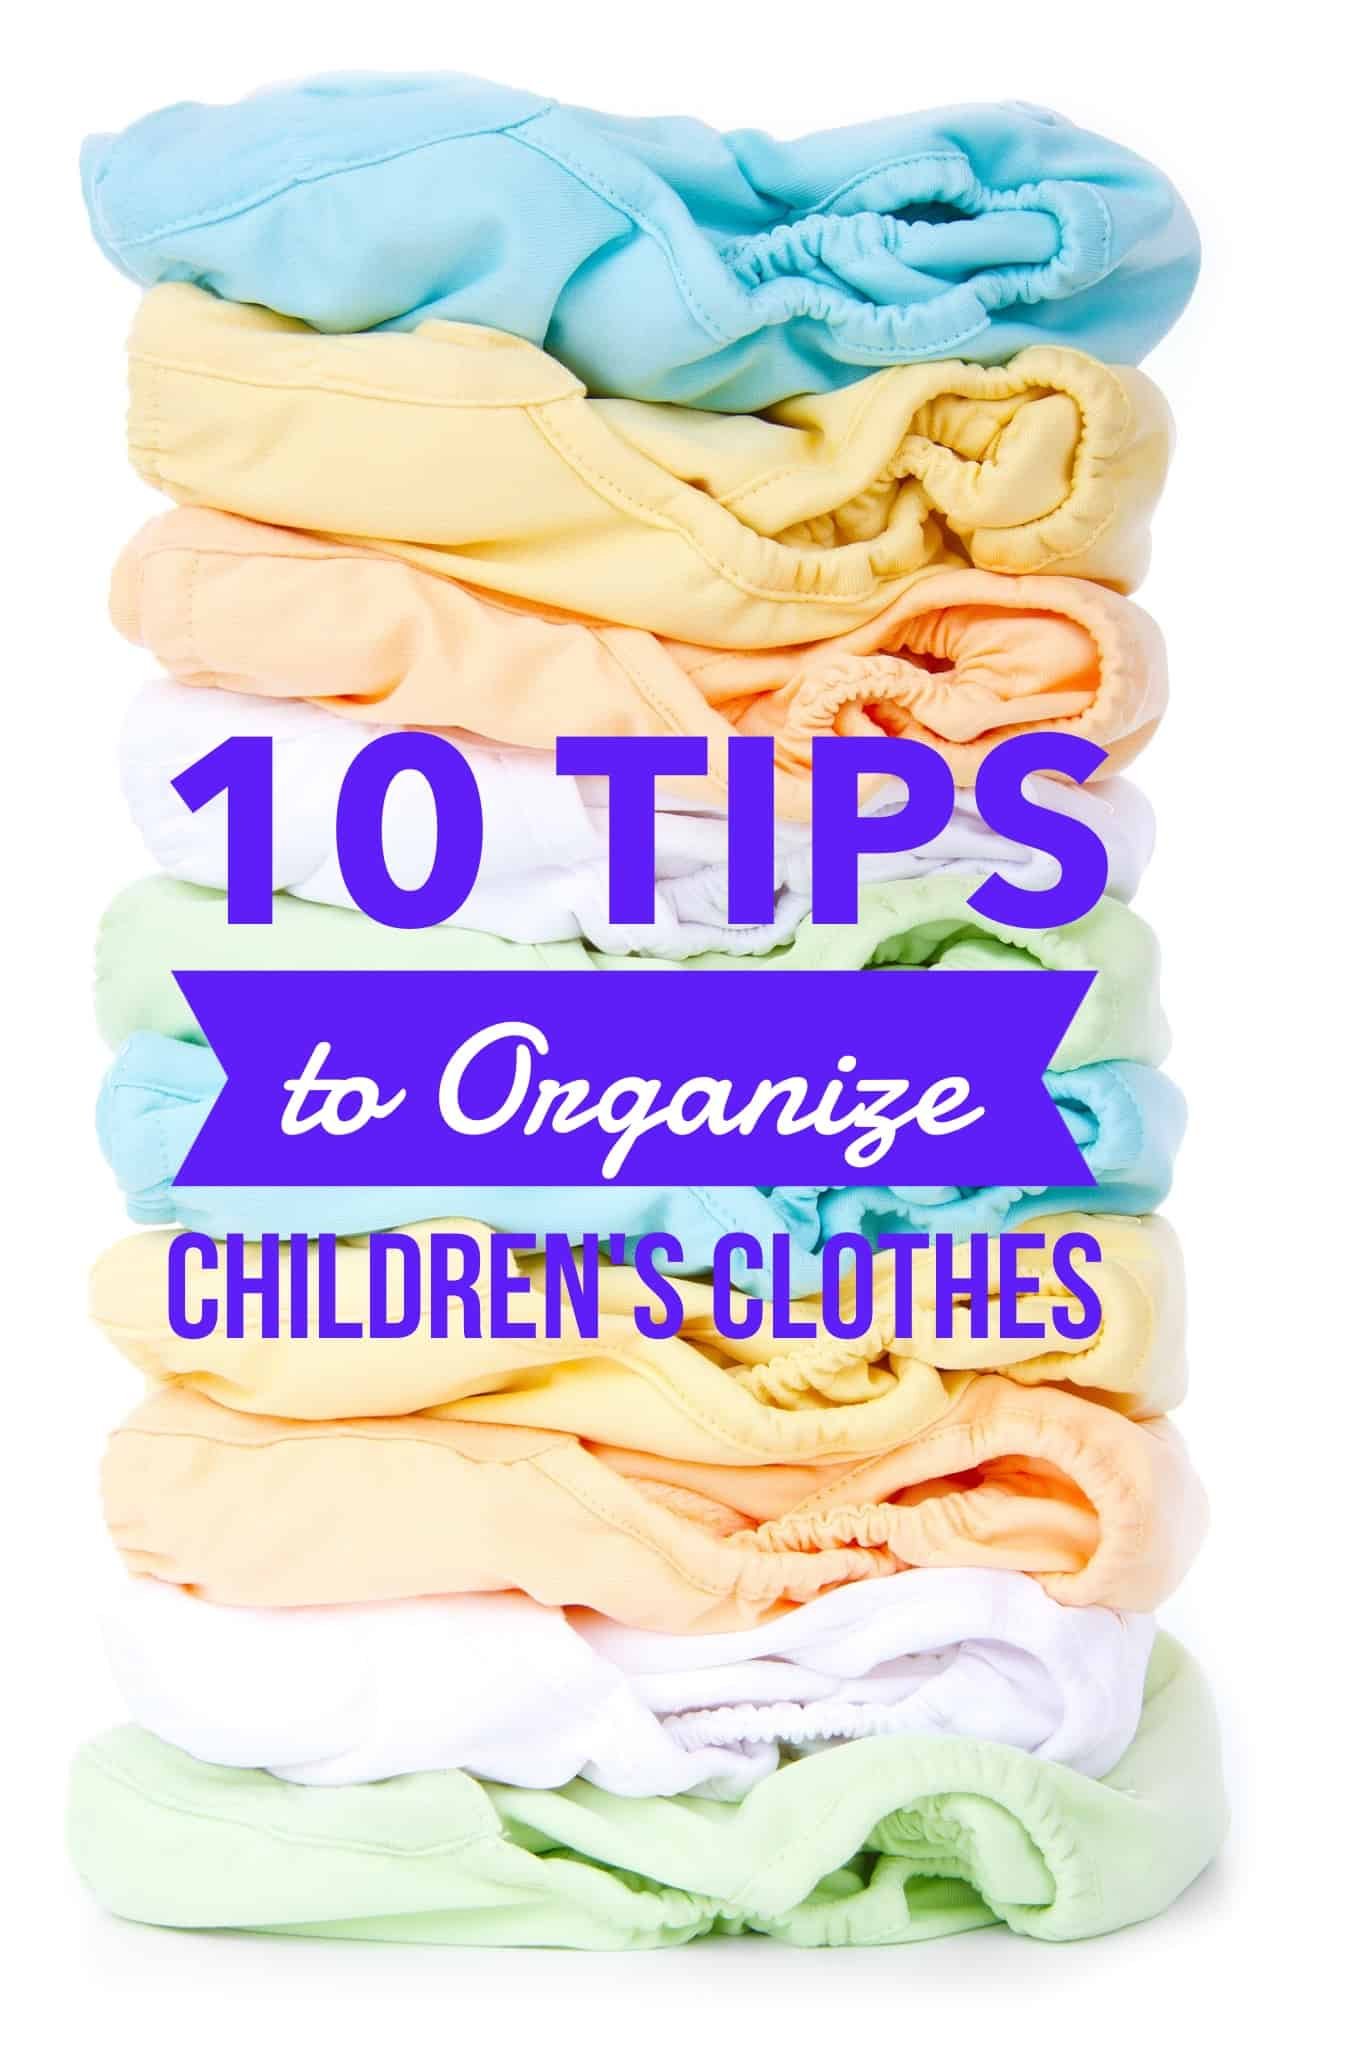 10 Tips to Organize Children's Clothes title